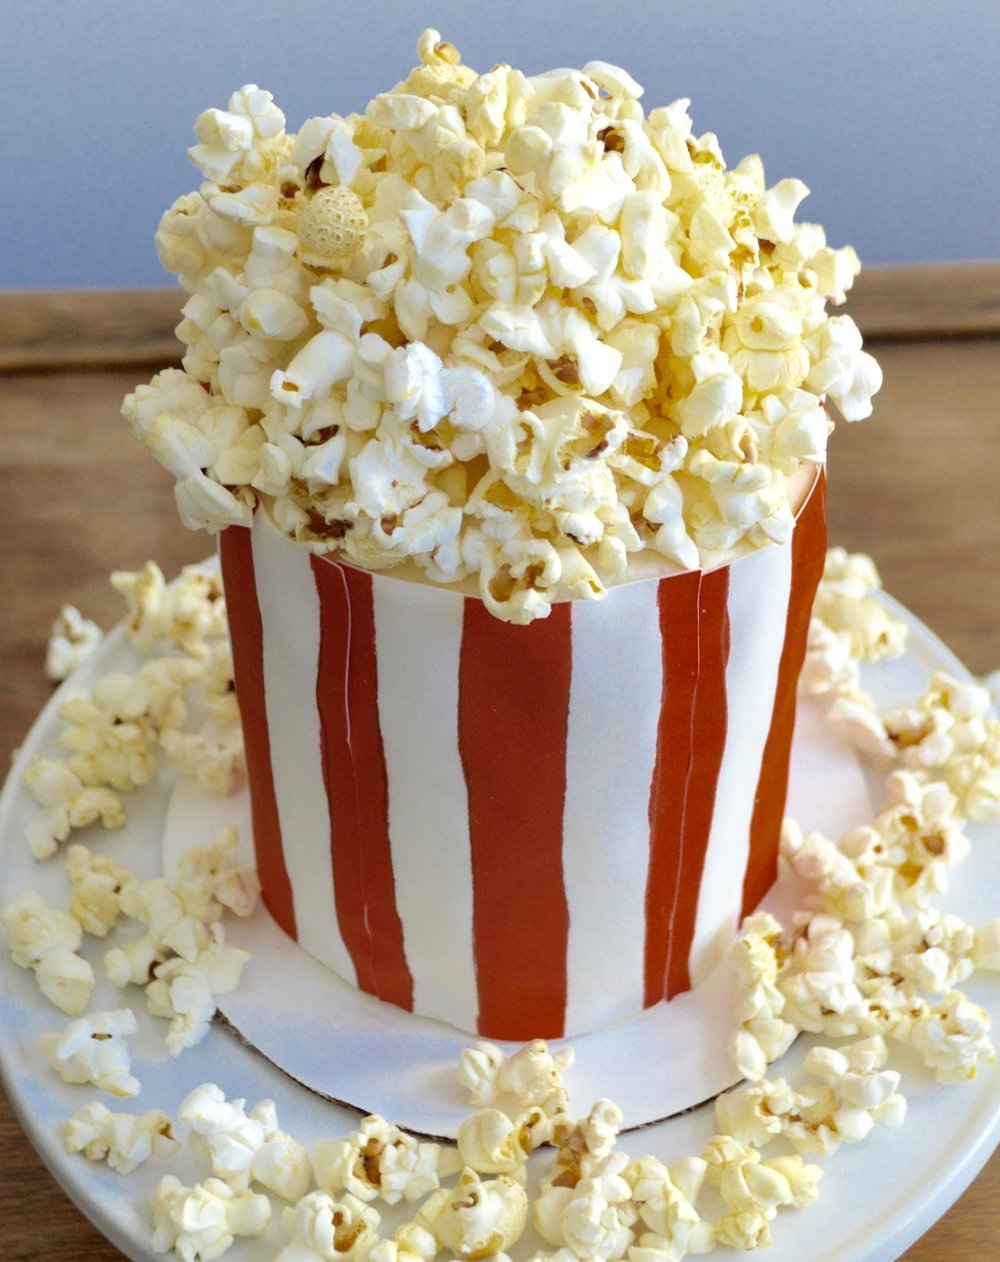 Popcorn cake for your Oscar Party or movie night